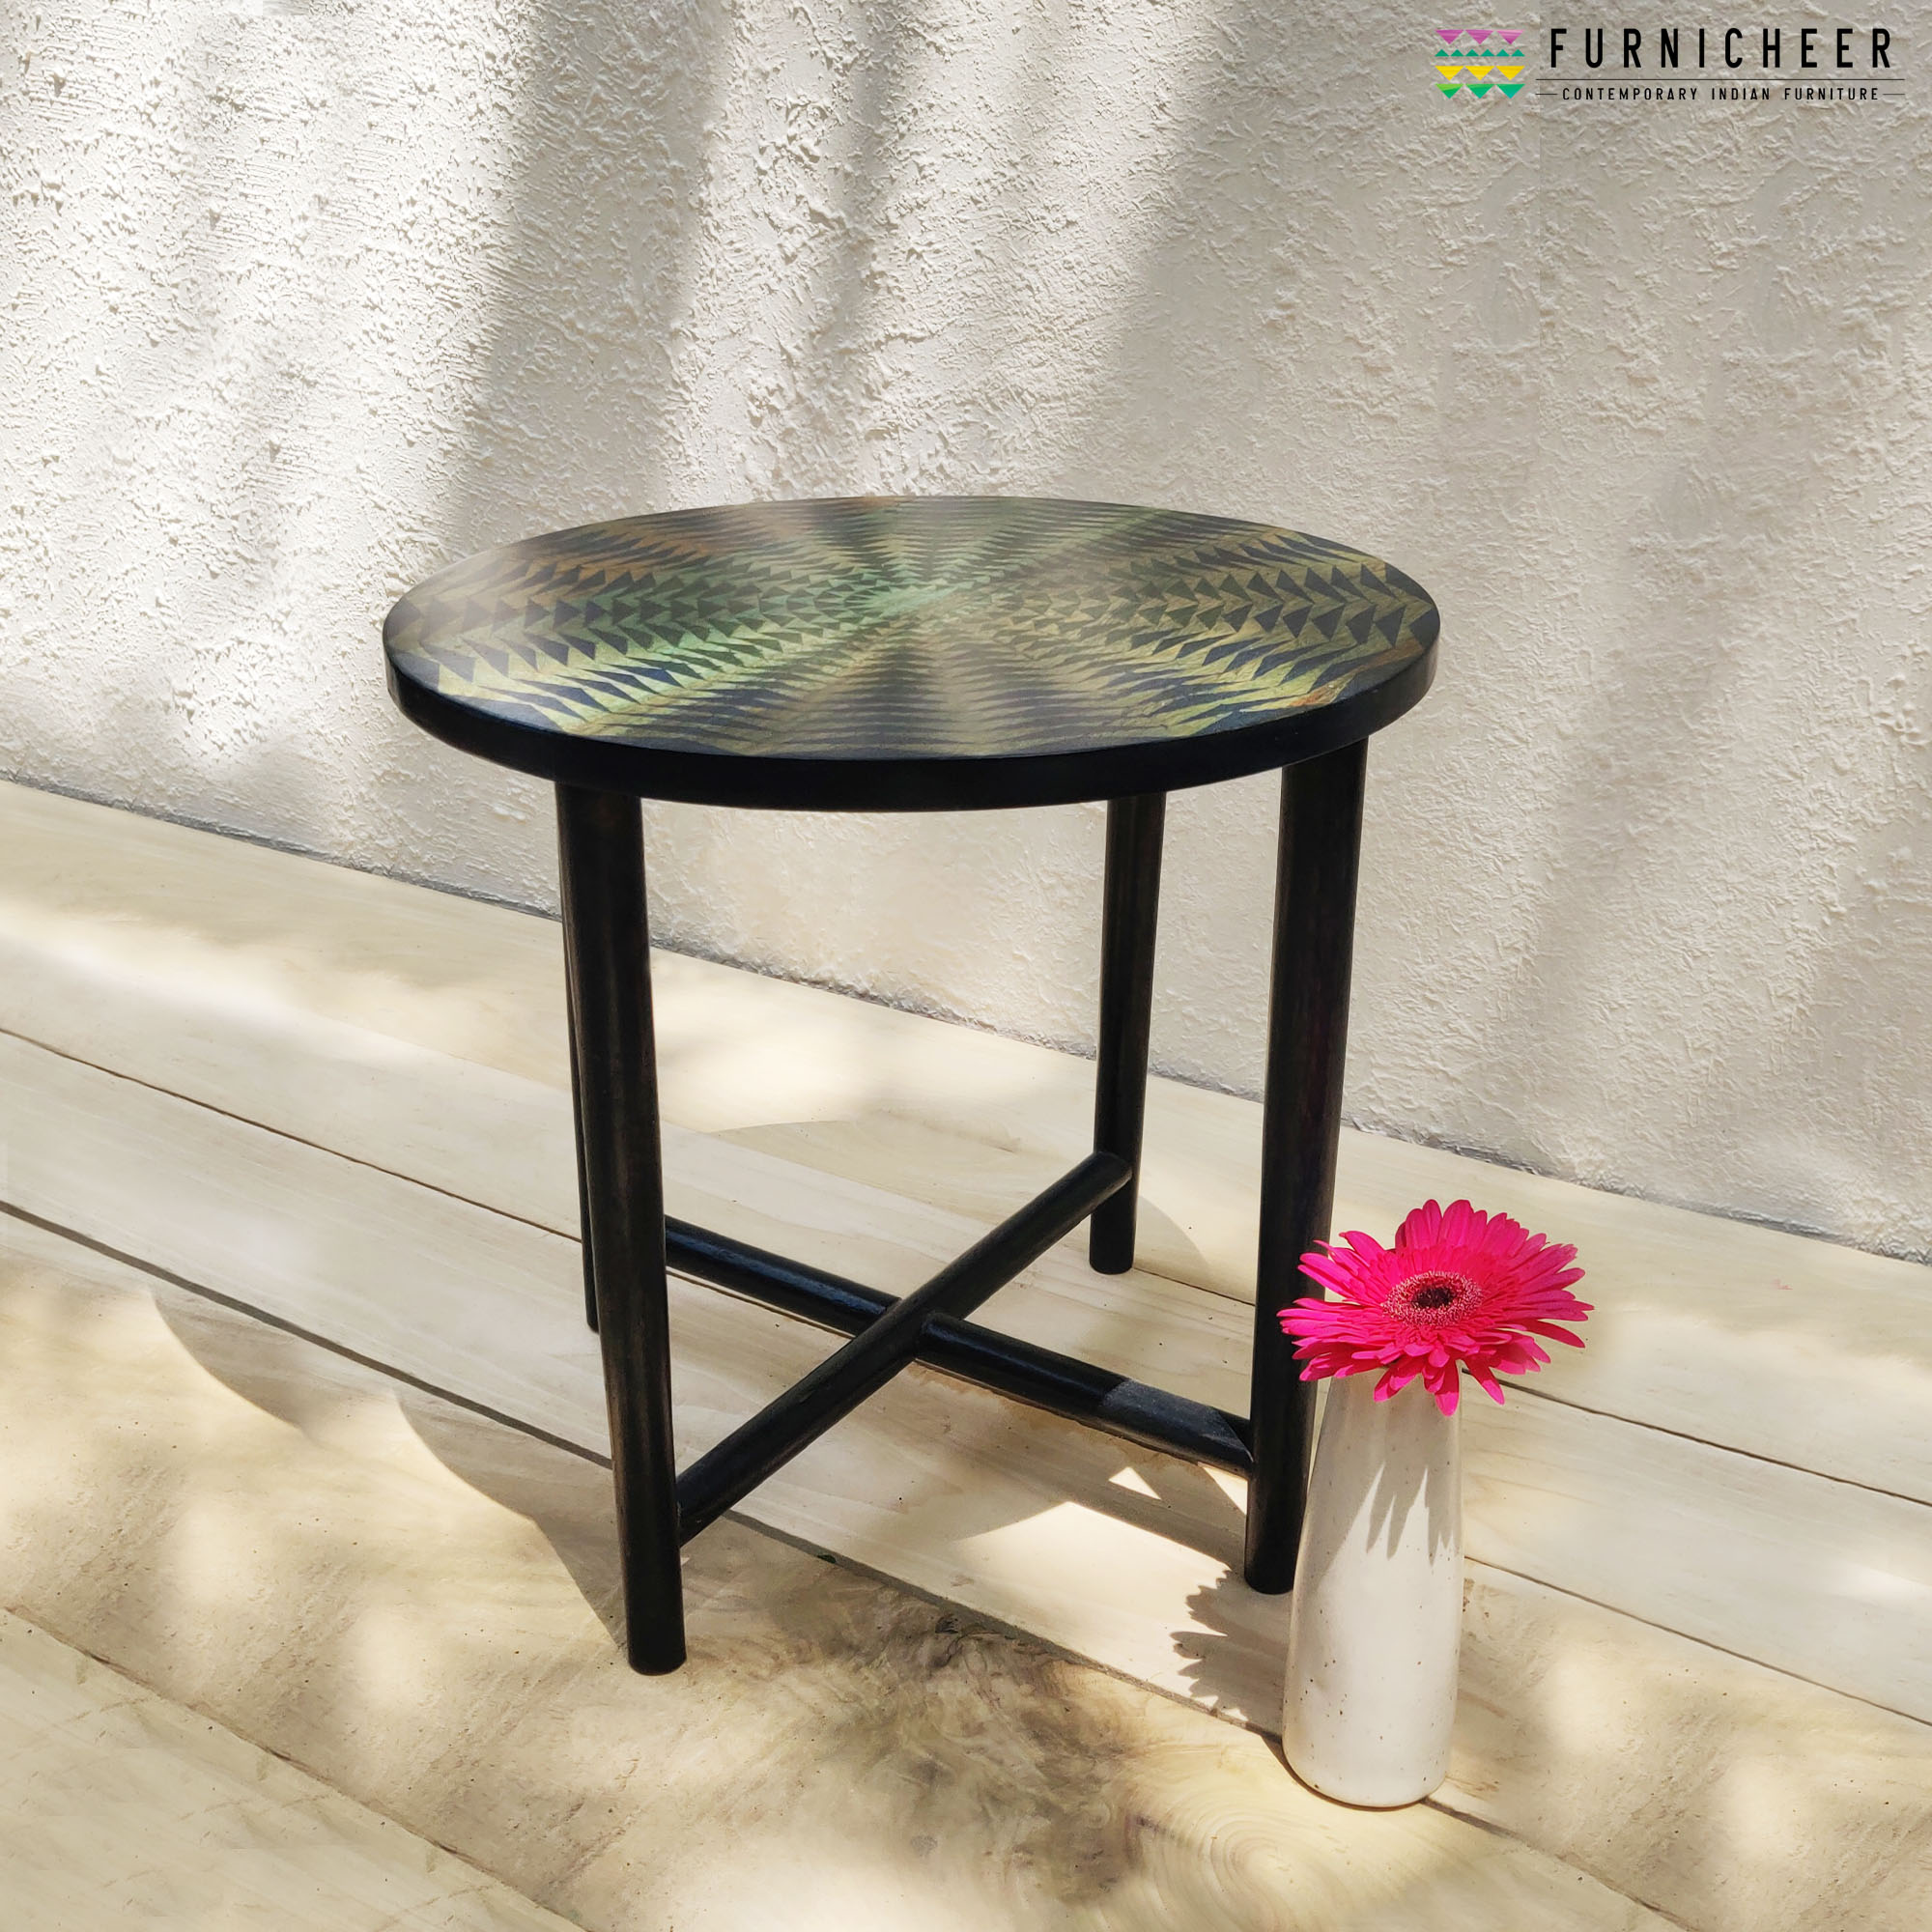 2.SIDE & END TABLE SKU GCST1817